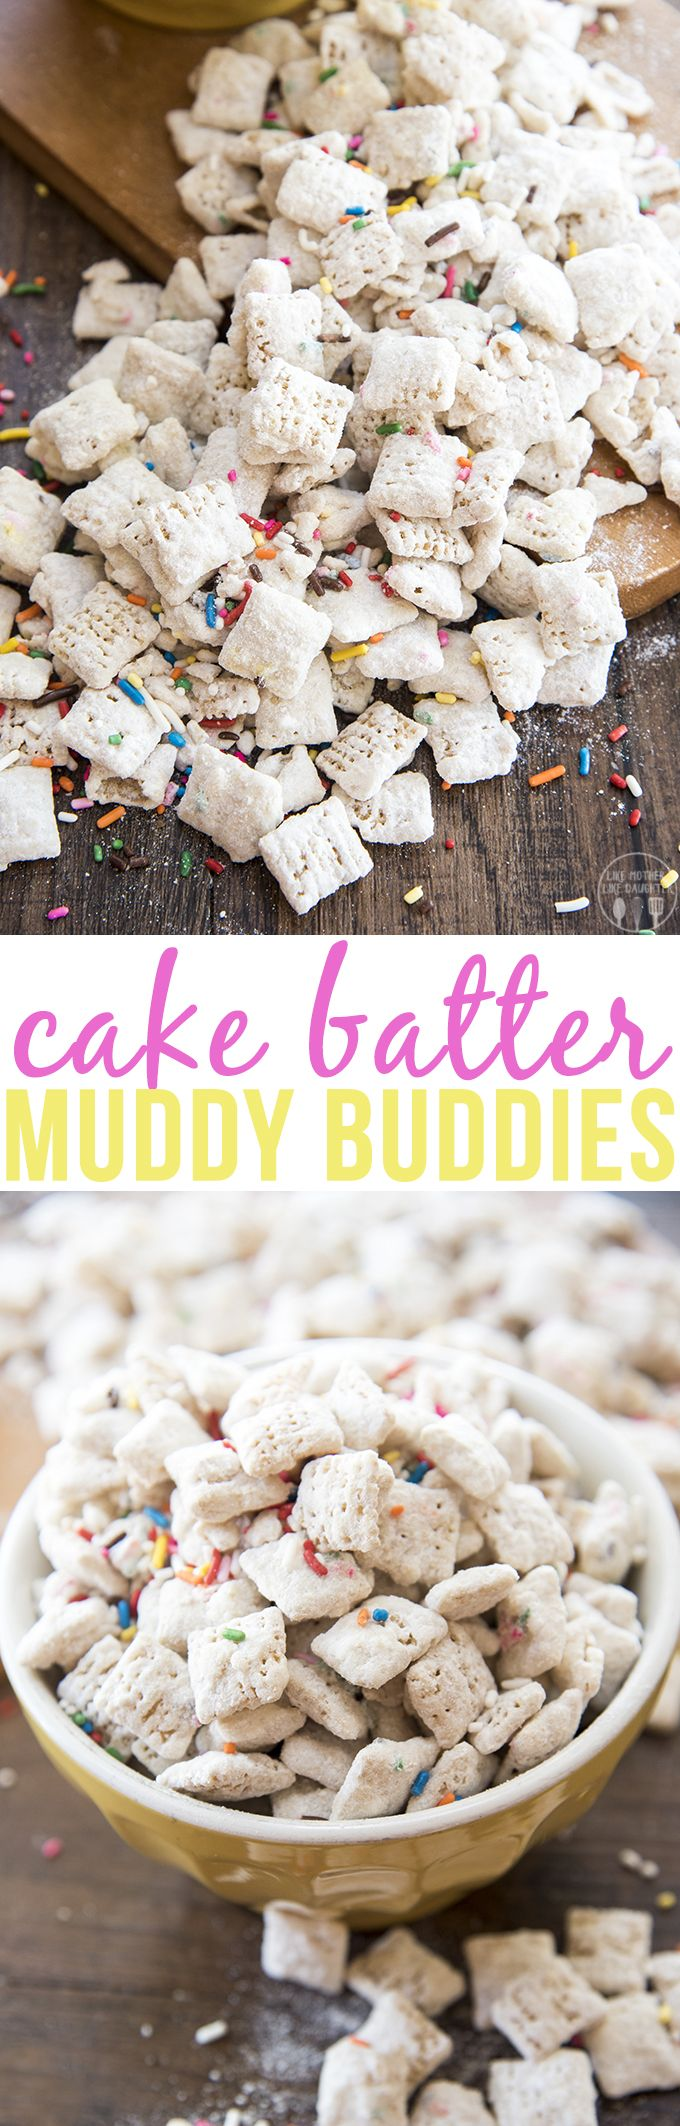 These cake batter muddy buddies are an addicting snack that tastes just like…